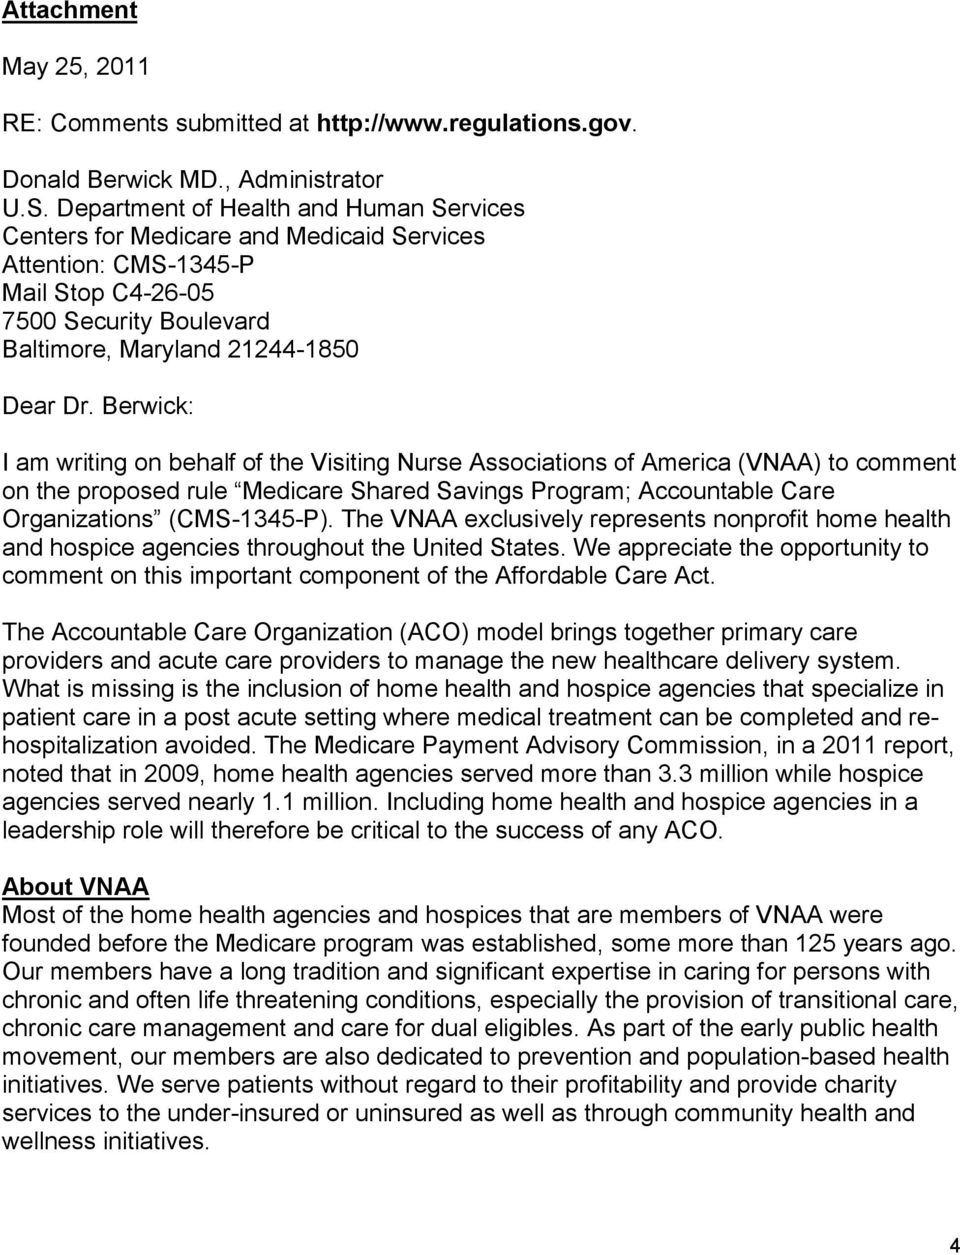 Berwick: I am writing on behalf of the Visiting Nurse Associations of America (VNAA) to comment on the proposed rule Medicare Shared Savings Program; Accountable Care Organizations (CMS-1345-P).